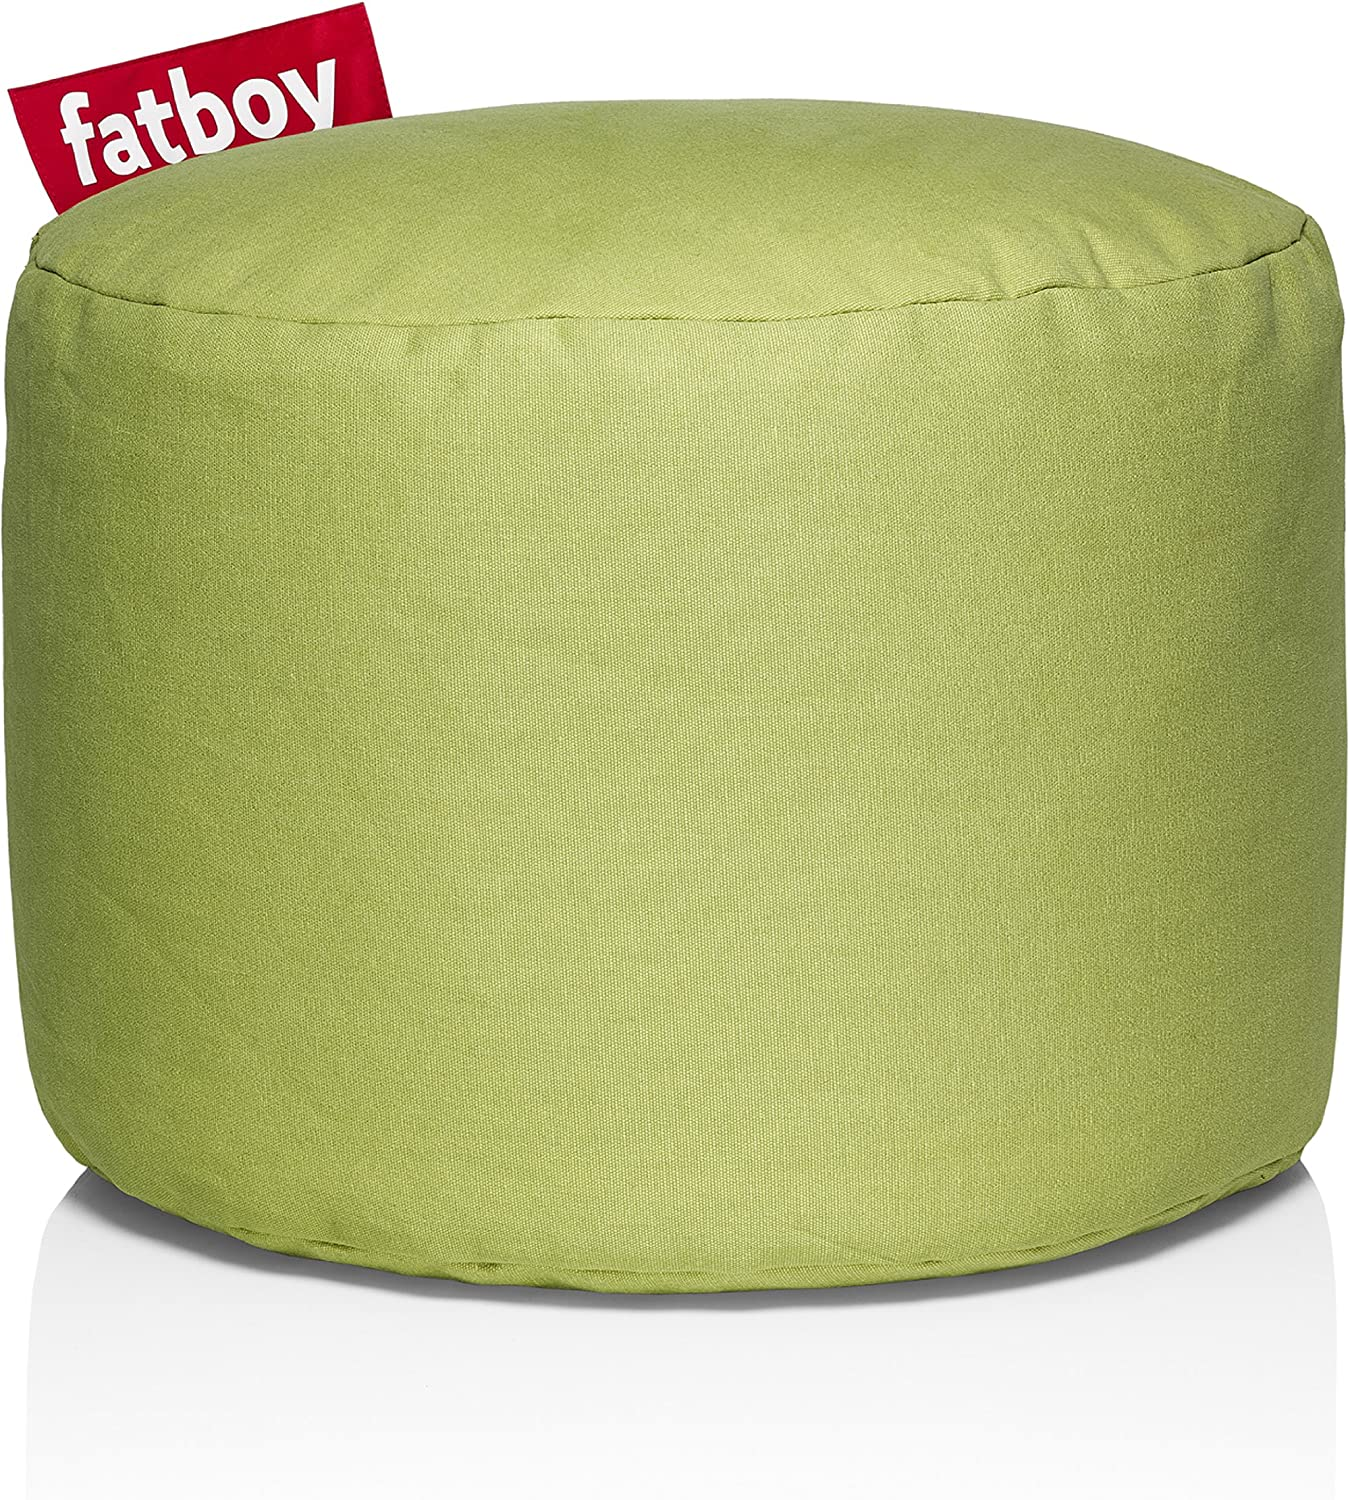 Fatboy Point Stonewashed Bean Bag, Lime Green